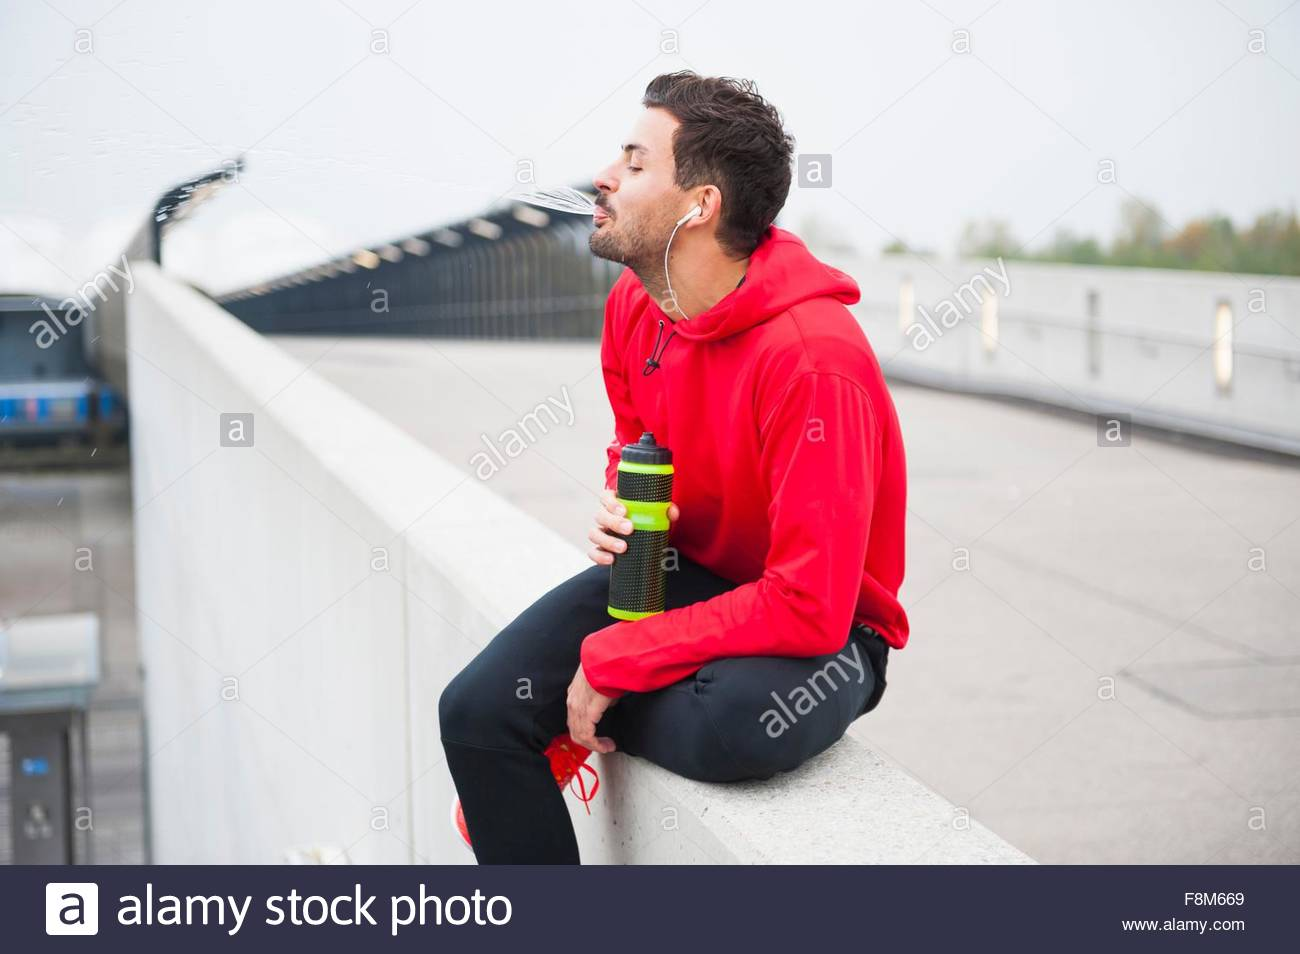 Young male runner sitting on rooftop edge with water bottle - Stock Image